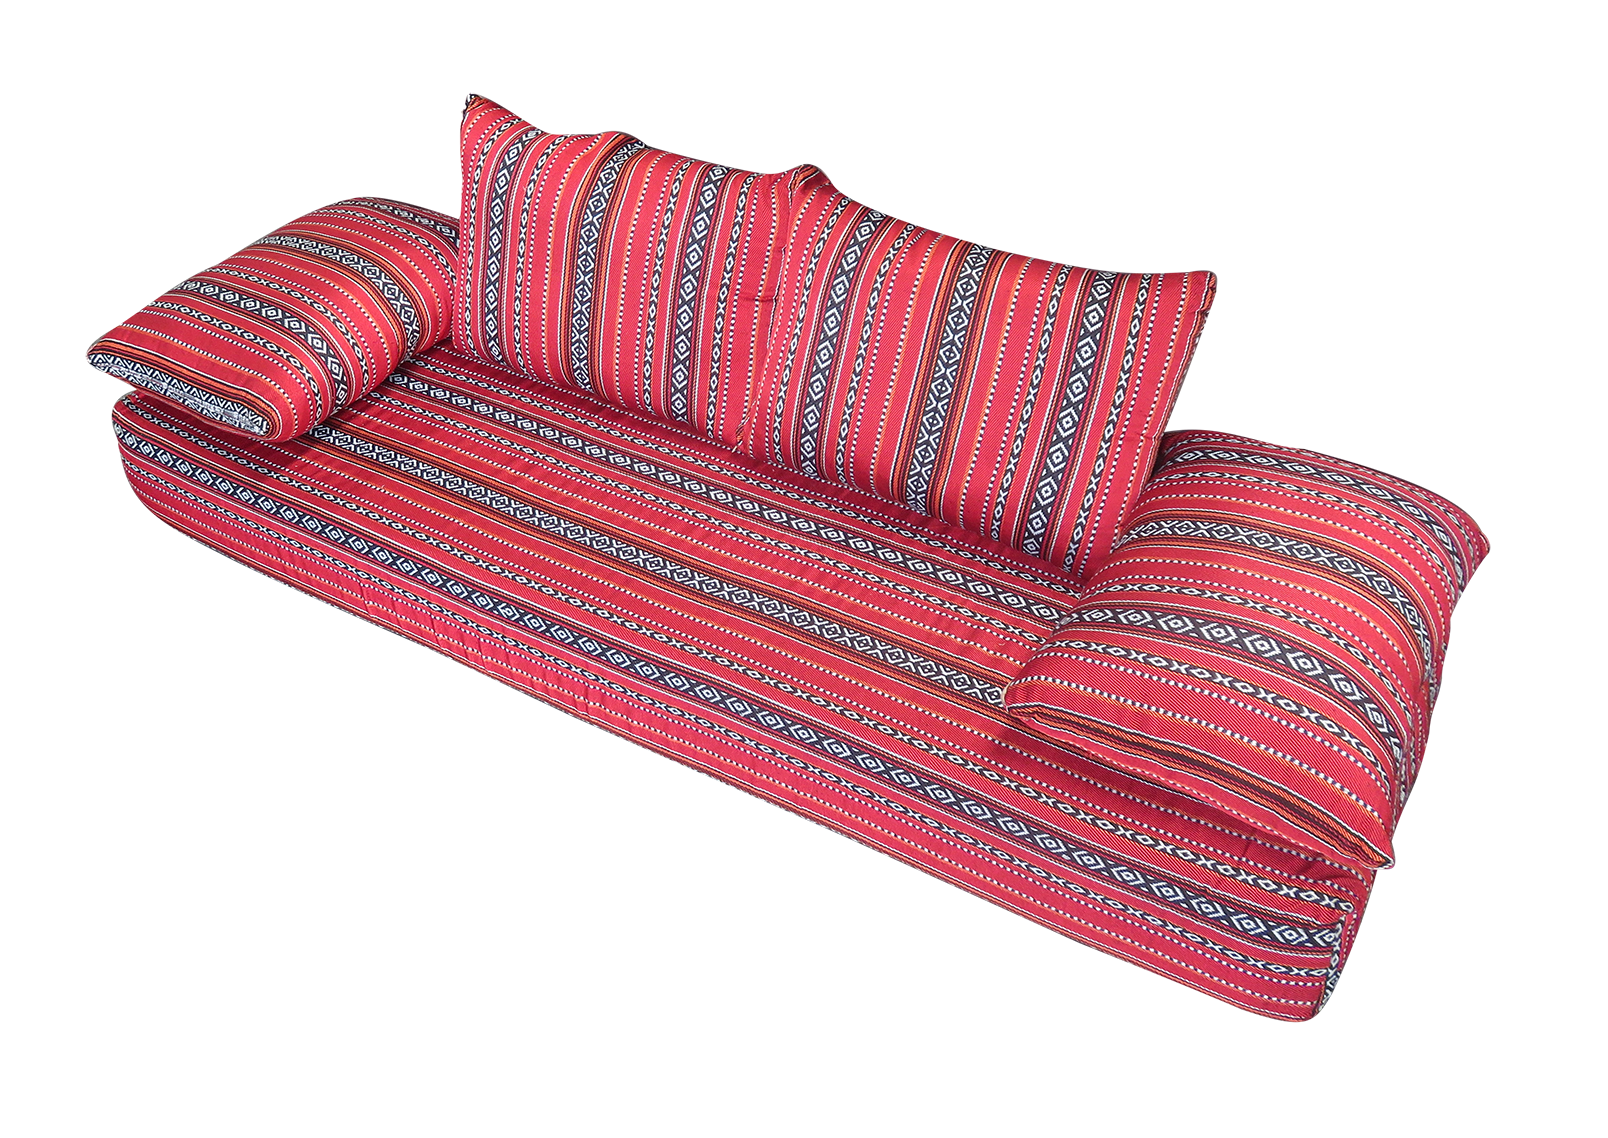 Rent or buy arabic majlis rectangular cushion 1 event for Sofa cushion covers dubai